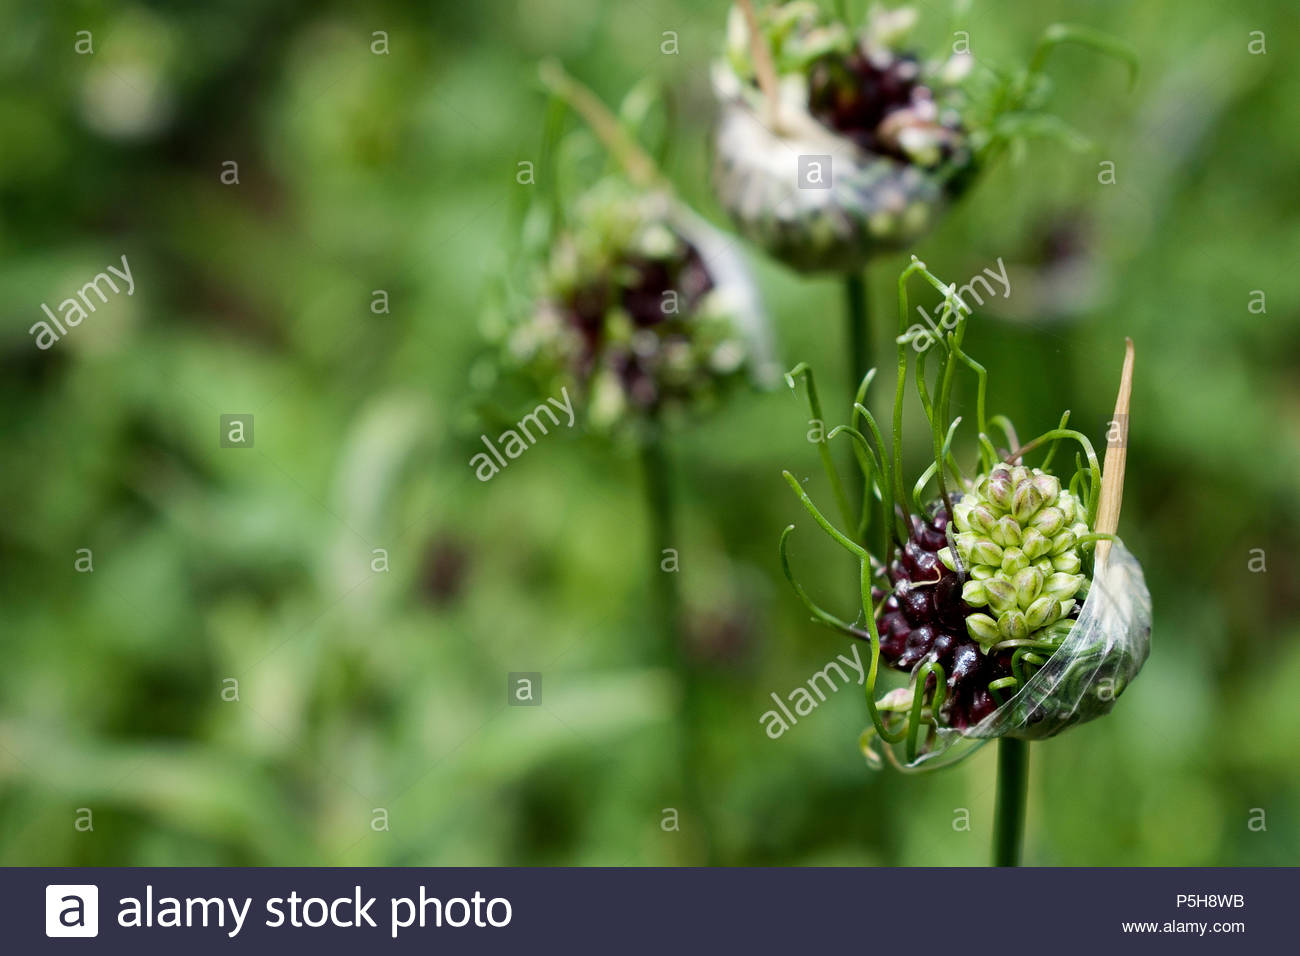 Purple and green seeds and grass-like spikes emerging from sac pods - Stock Image